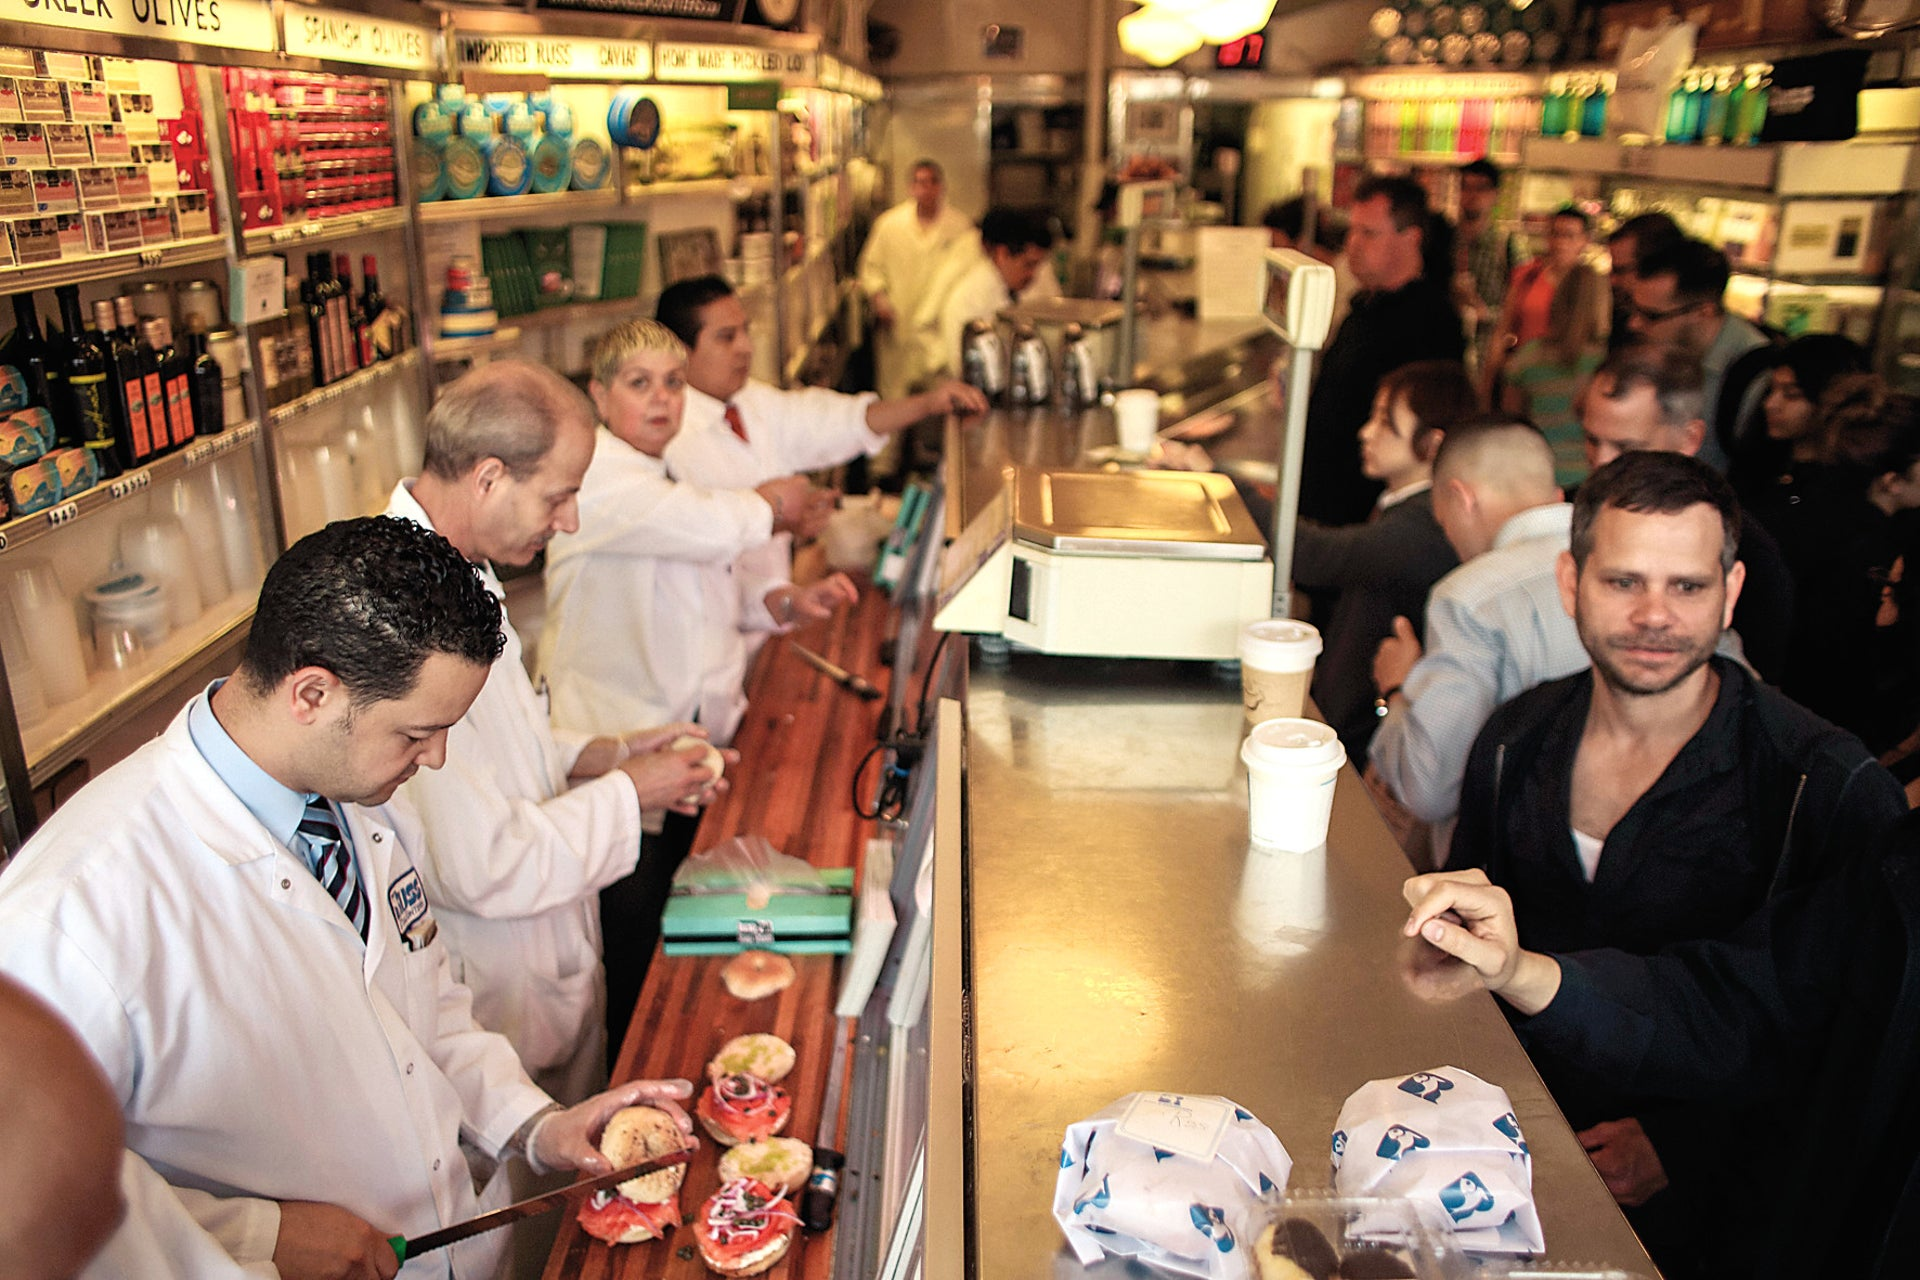 Russ & Daughters Café. The ultimate New York-Jewish experience: nostalgia, style and bagels.